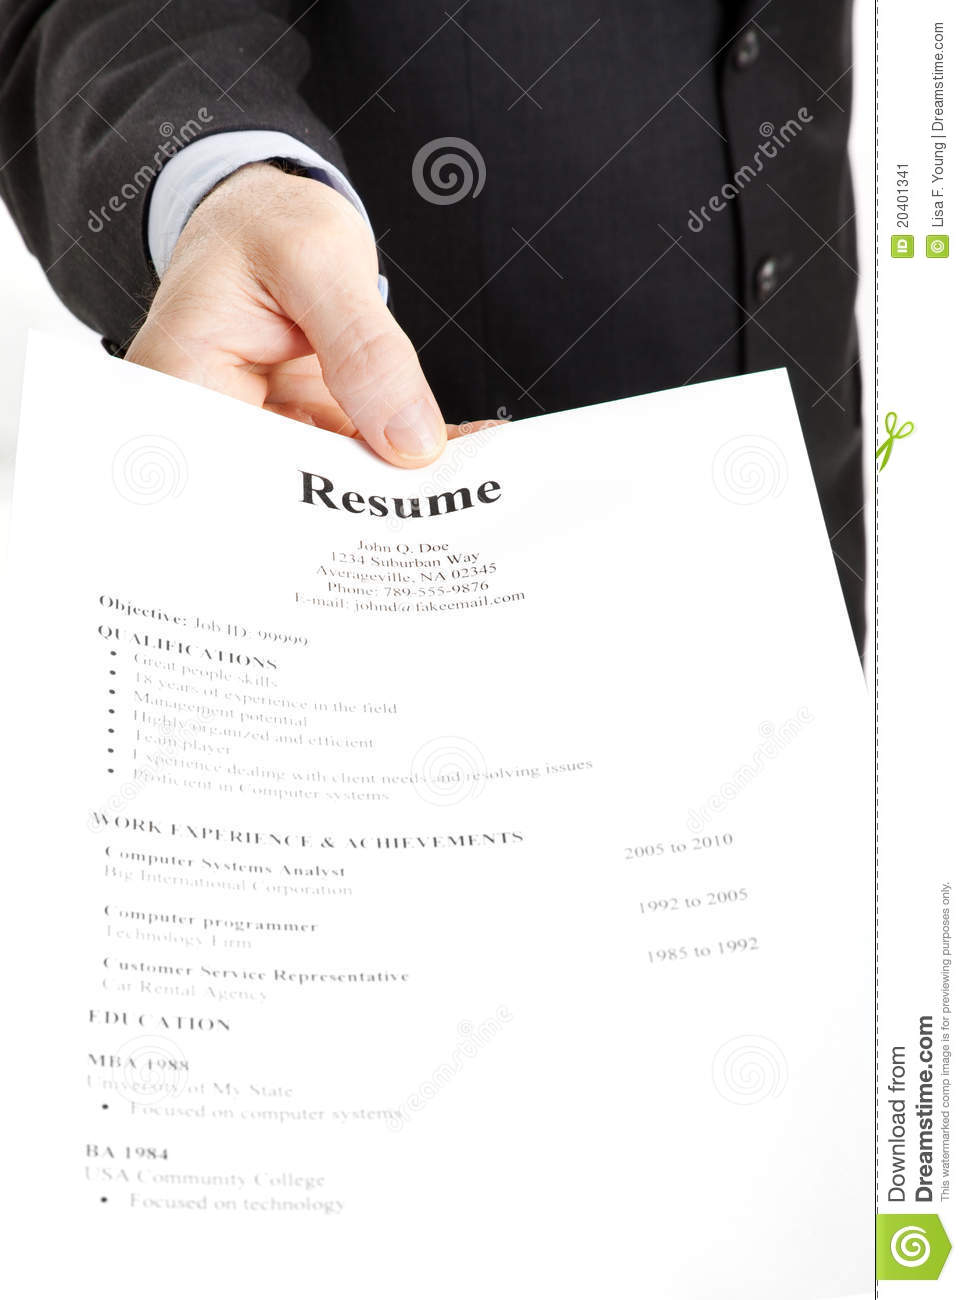 Free Leaflet Template Worden resume highschool resume